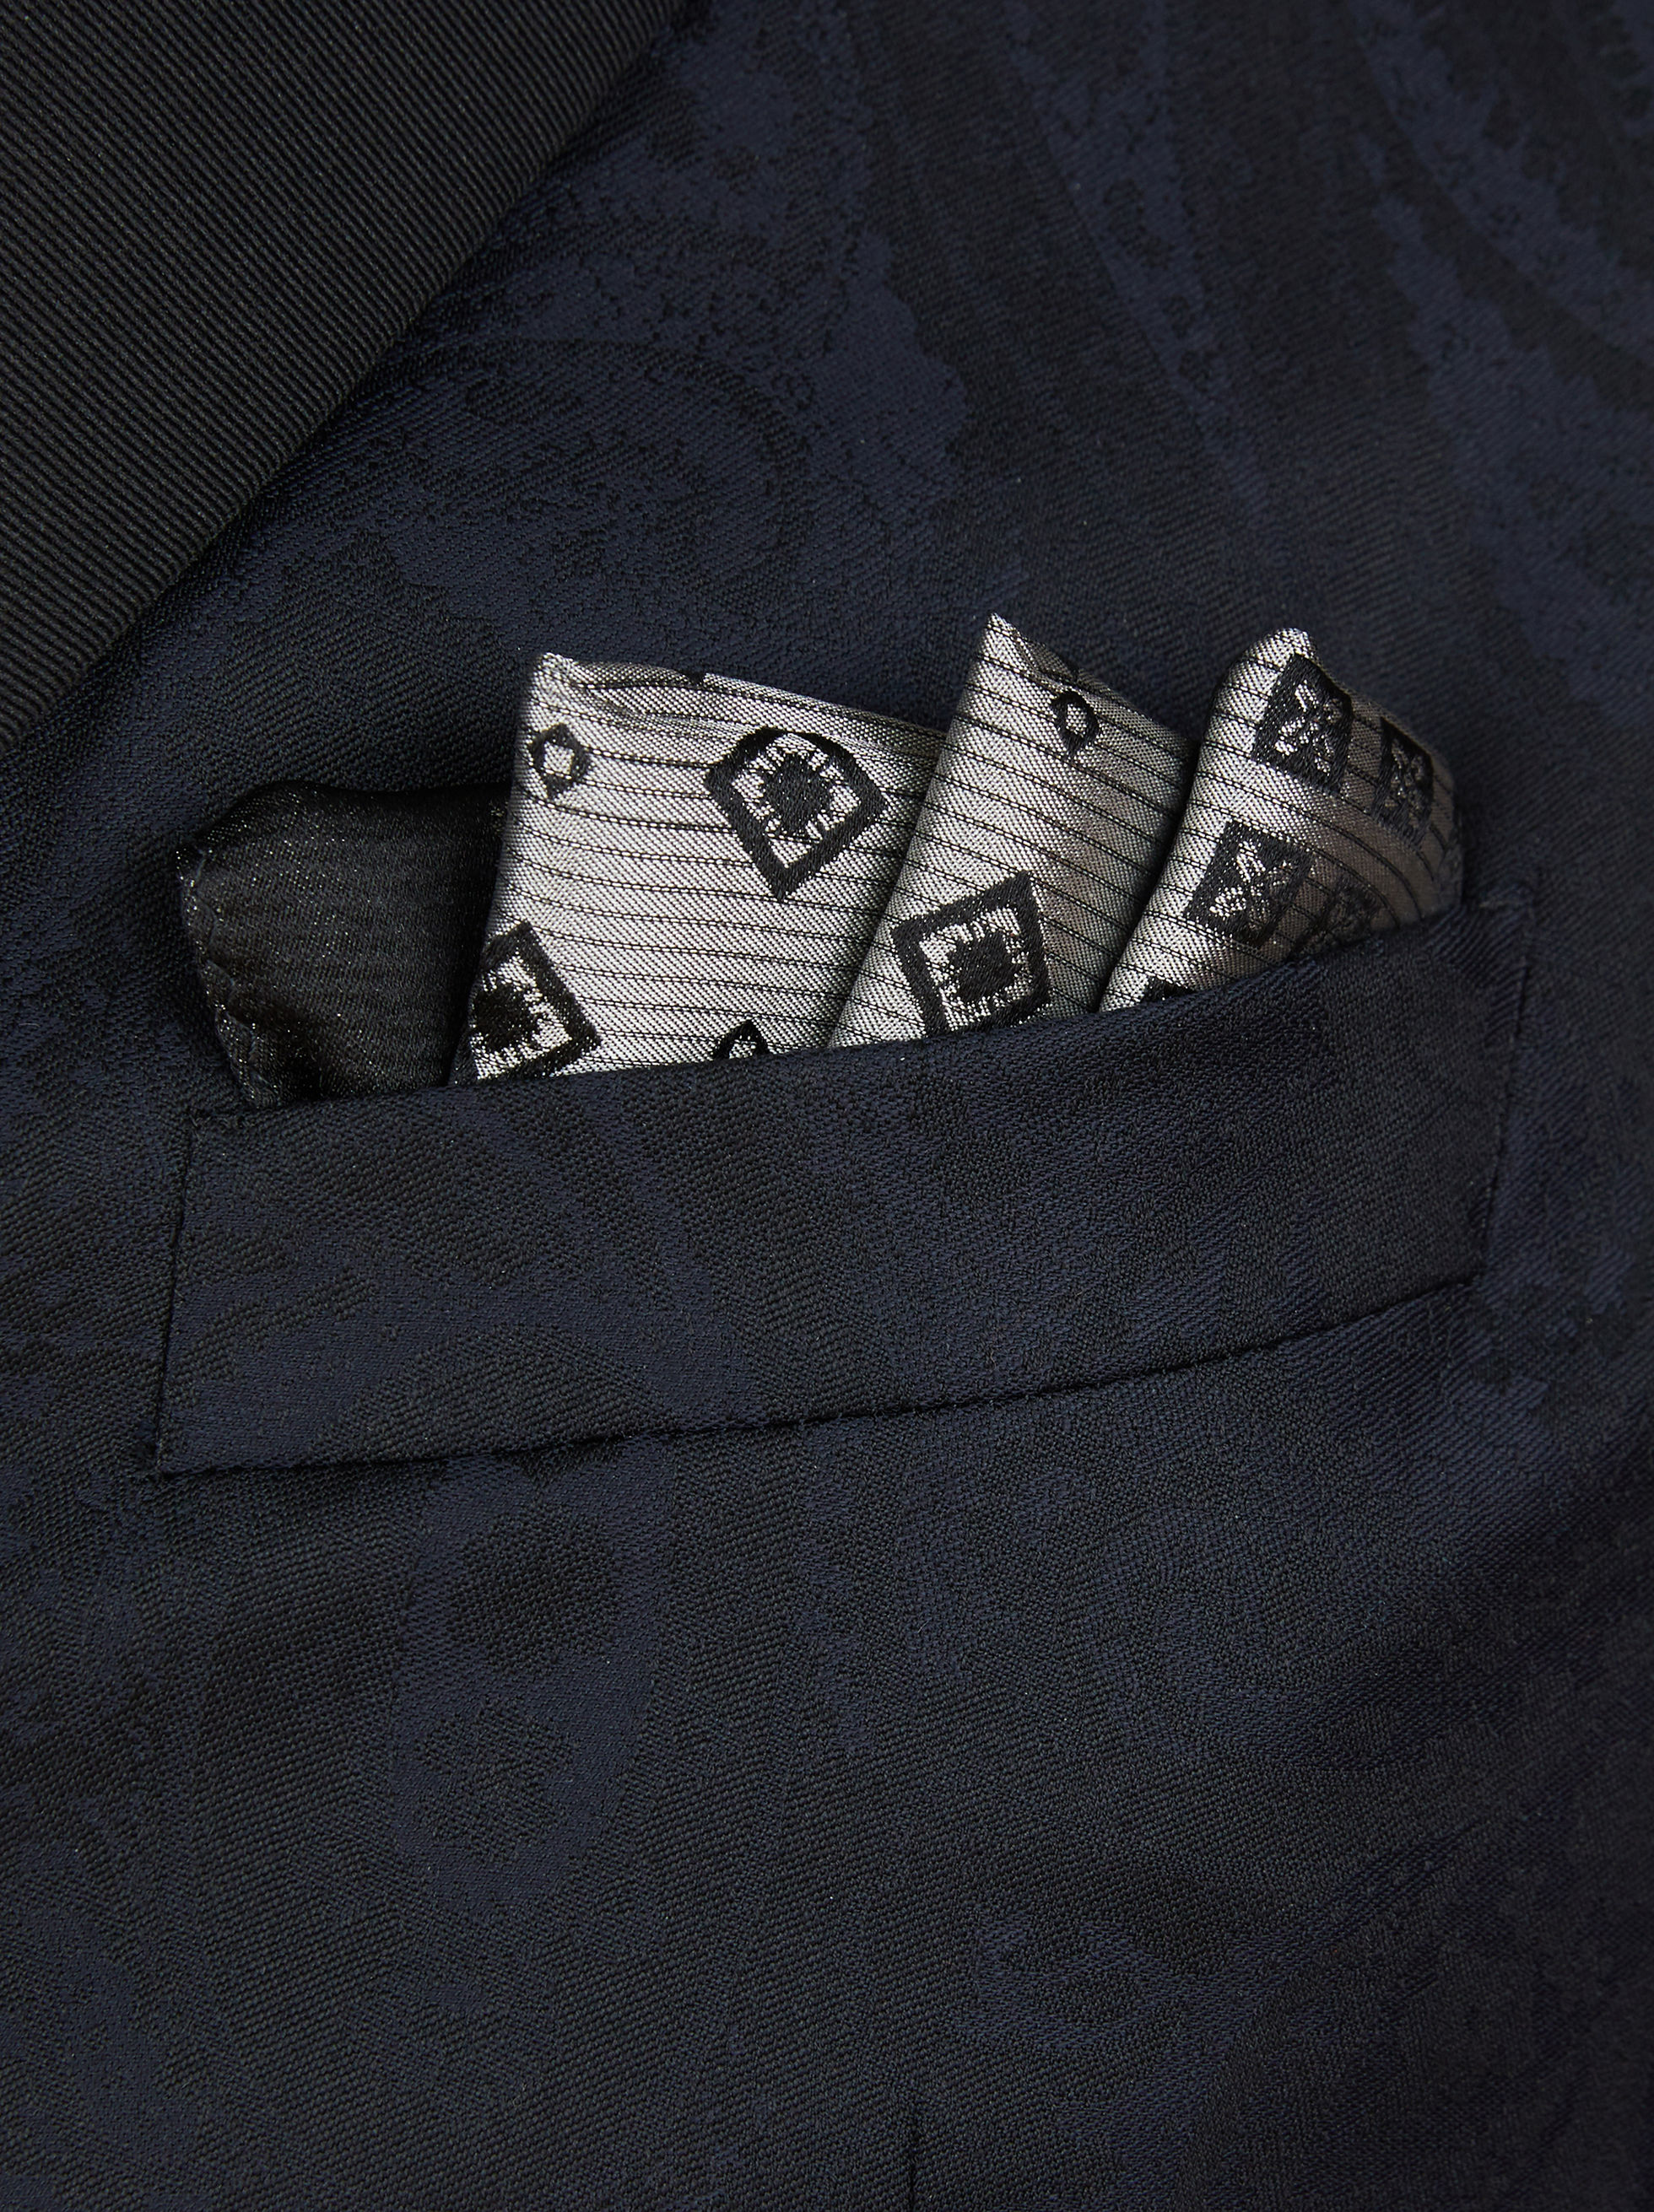 PATCHWORK PRINT POCKET HANDKERCHIEF